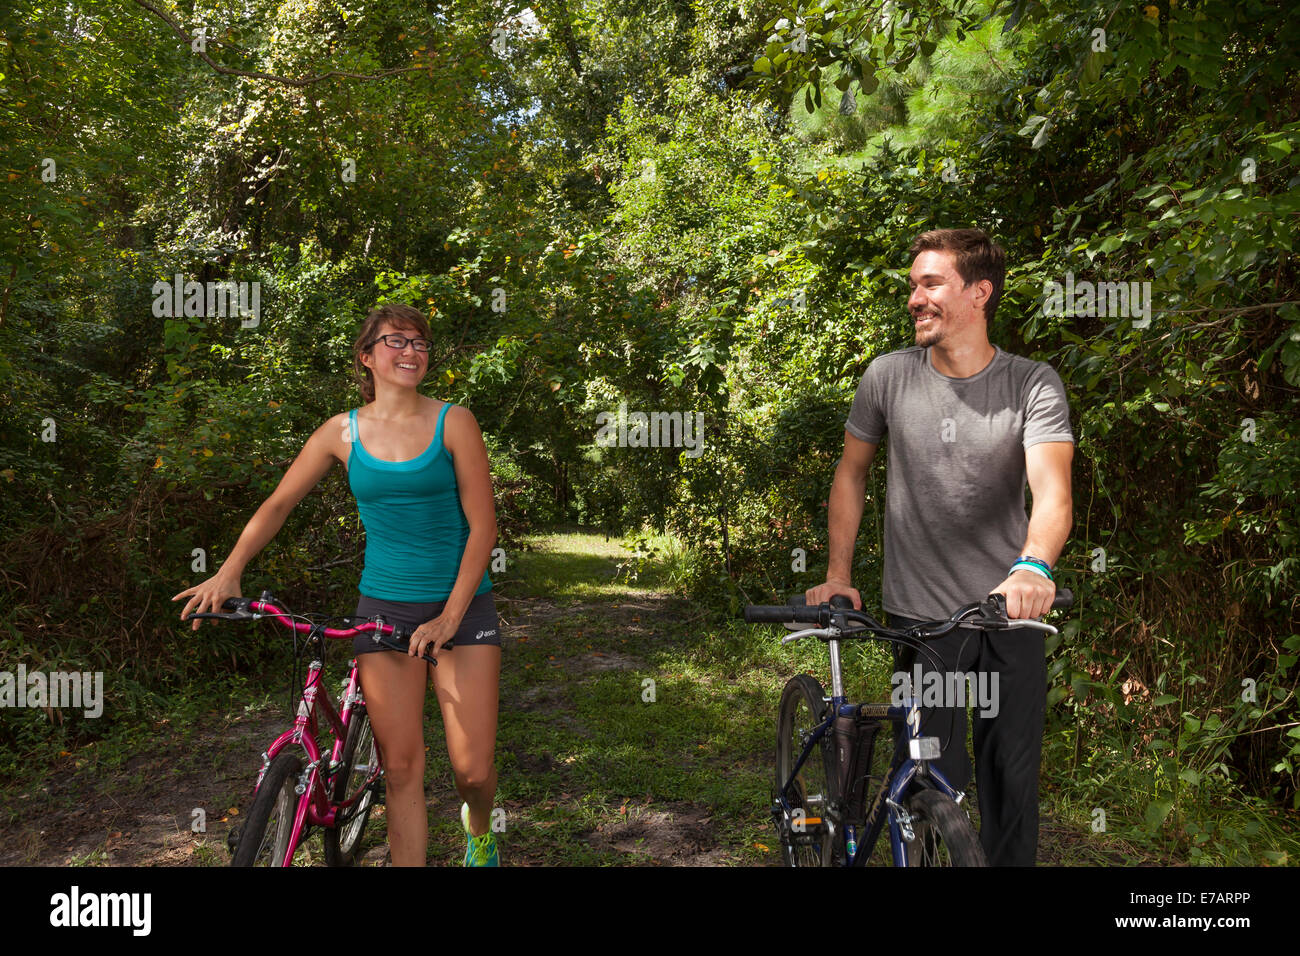 A view of a couple returning from a bicycle ride near Jacksonville, FL. - Stock Image